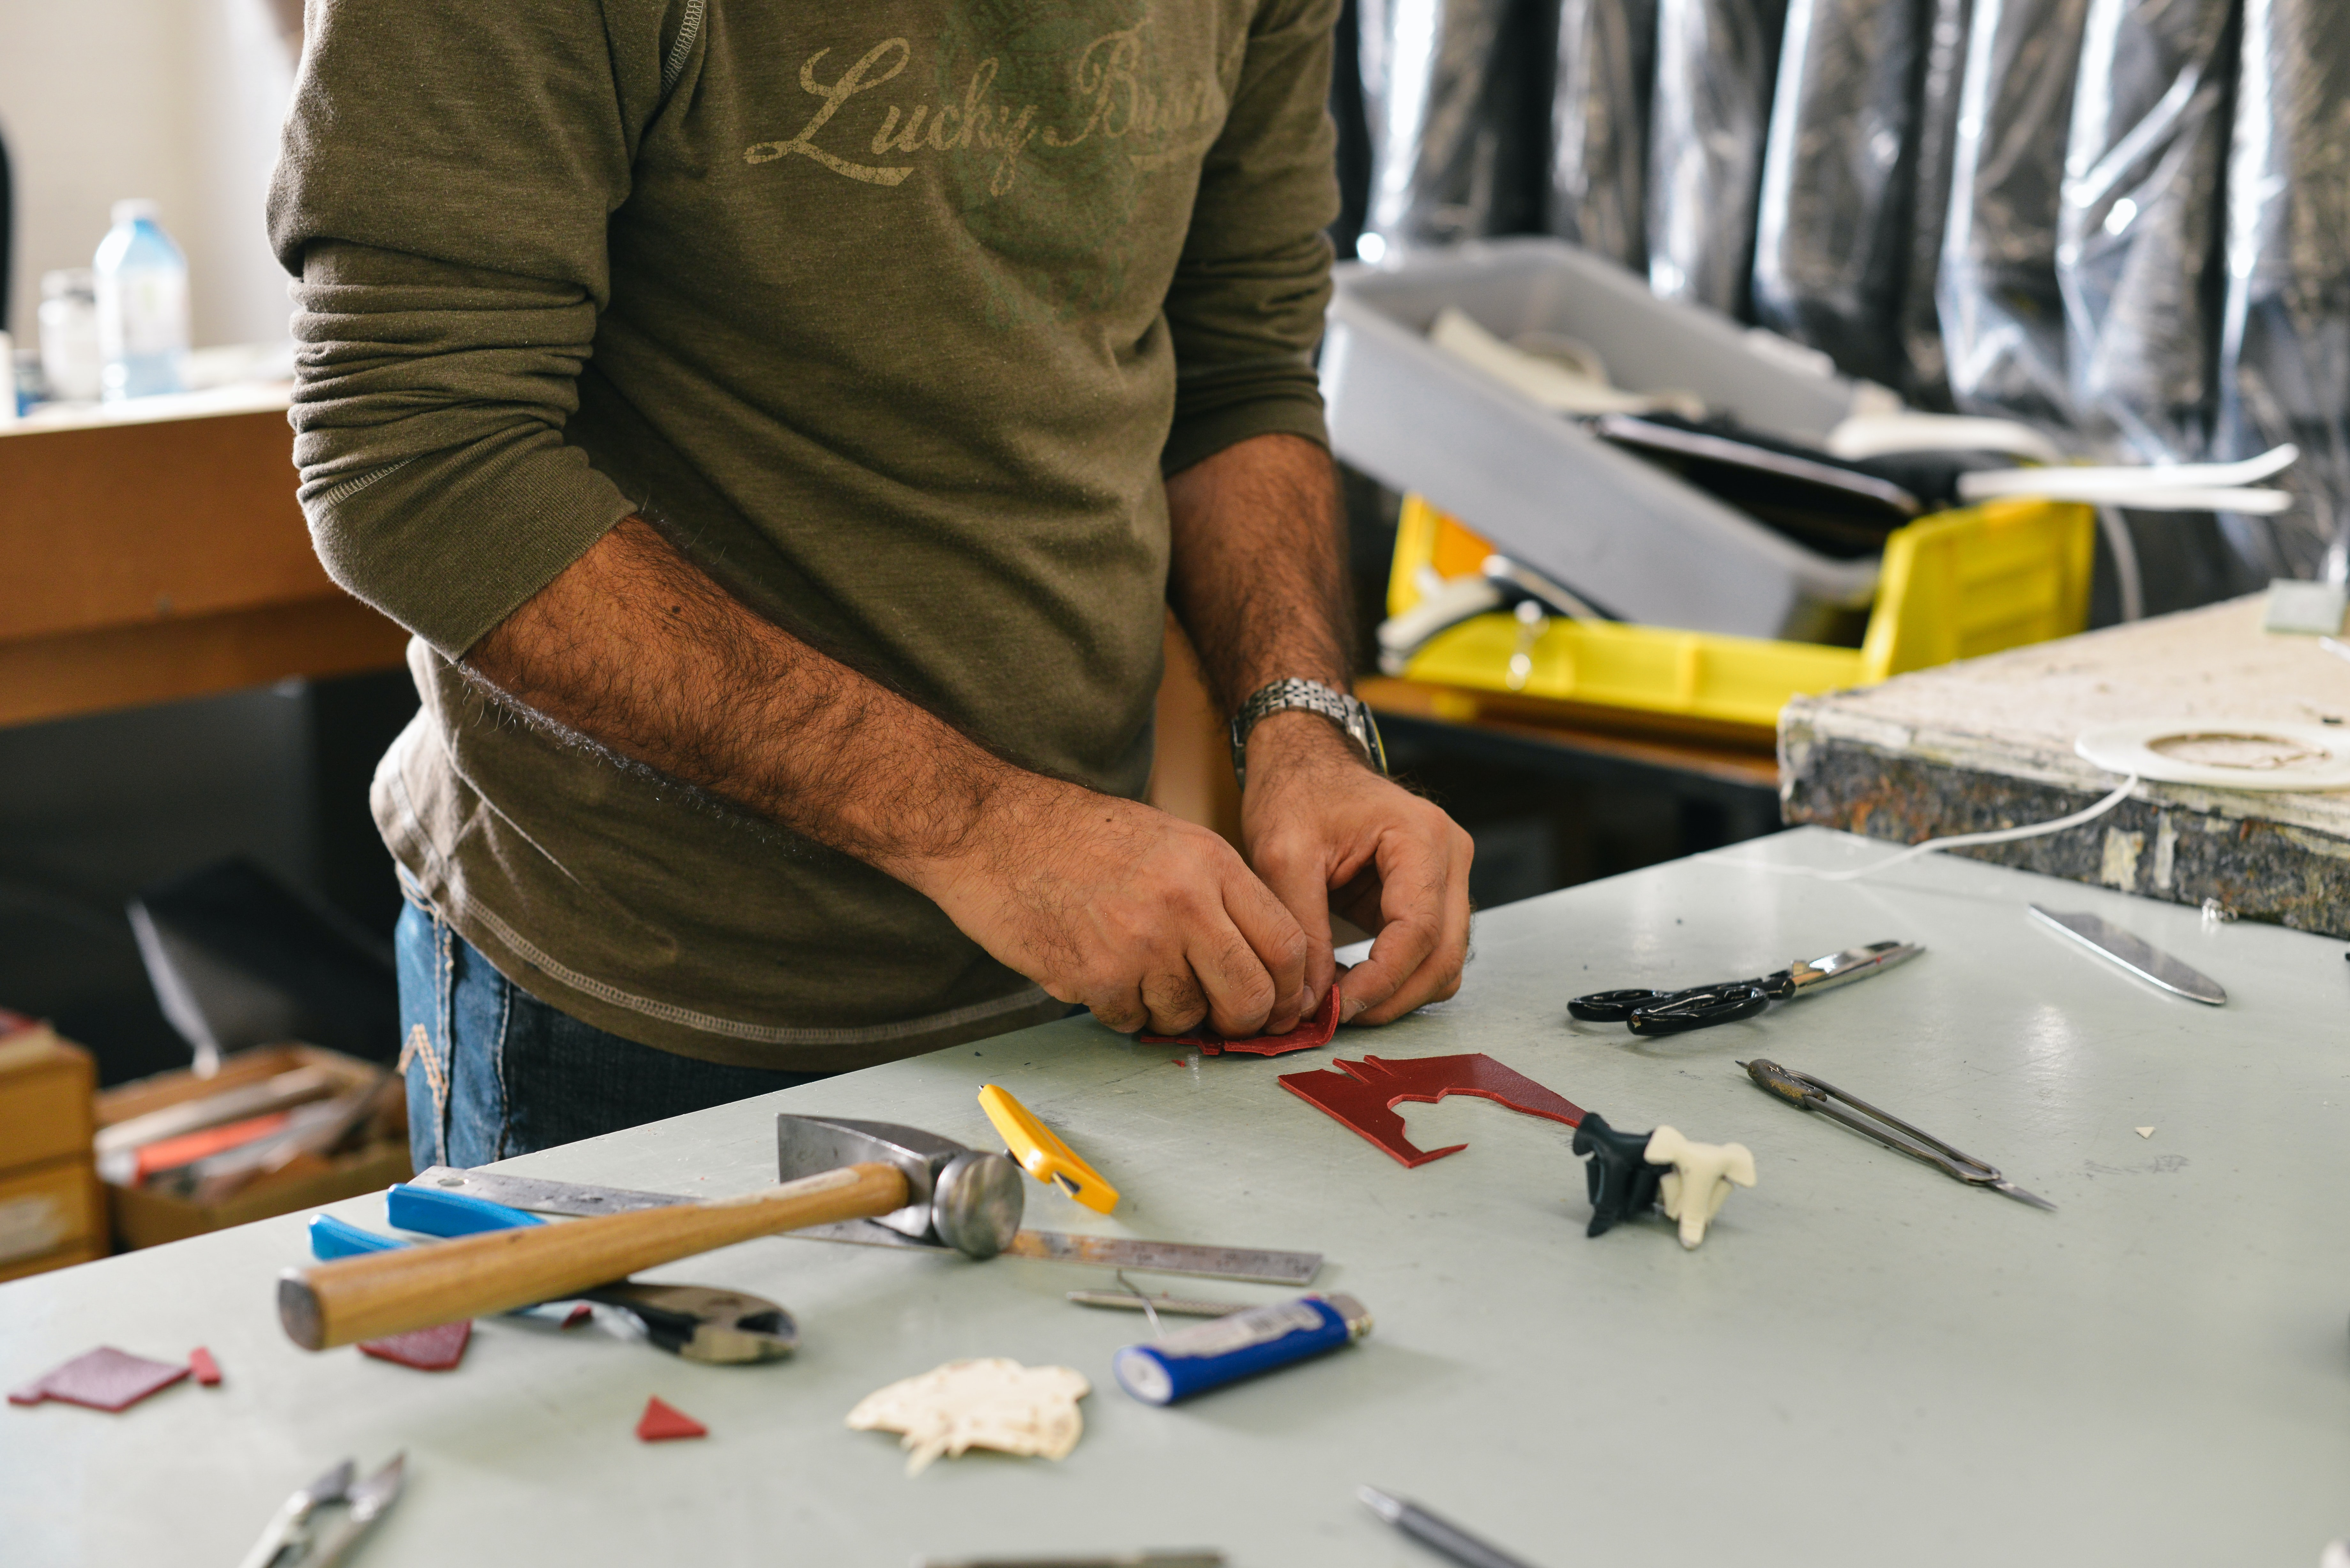 A man working on a craft project at a table with tools and pieces of plastic